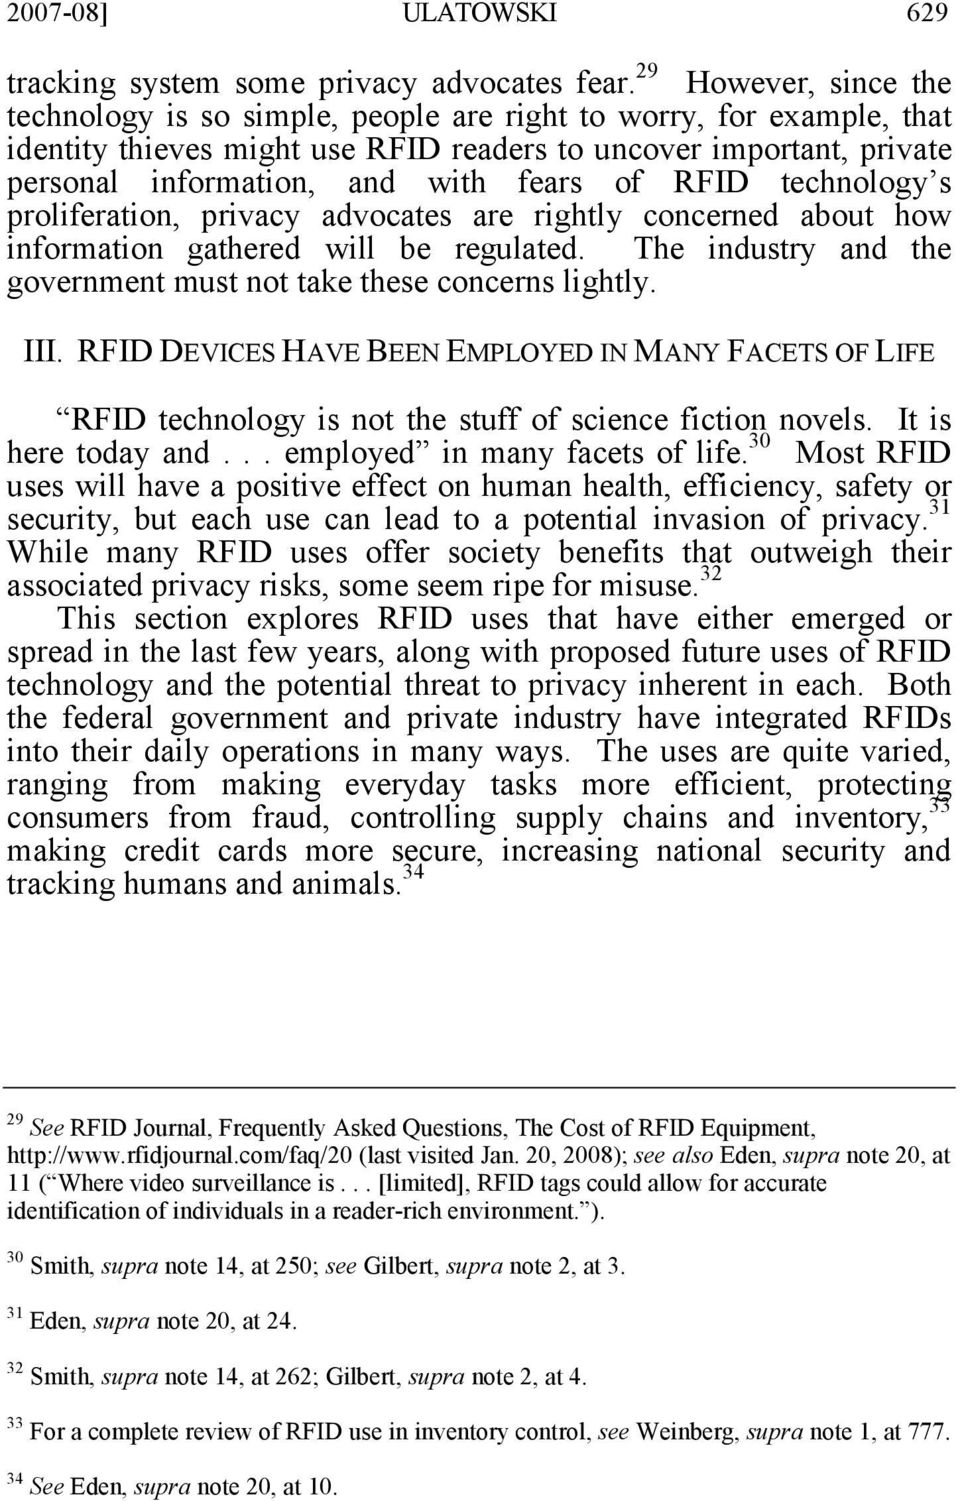 of RFID technology s proliferation, privacy advocates are rightly concerned about how information gathered will be regulated. The industry and the government must not take these concerns lightly. III.